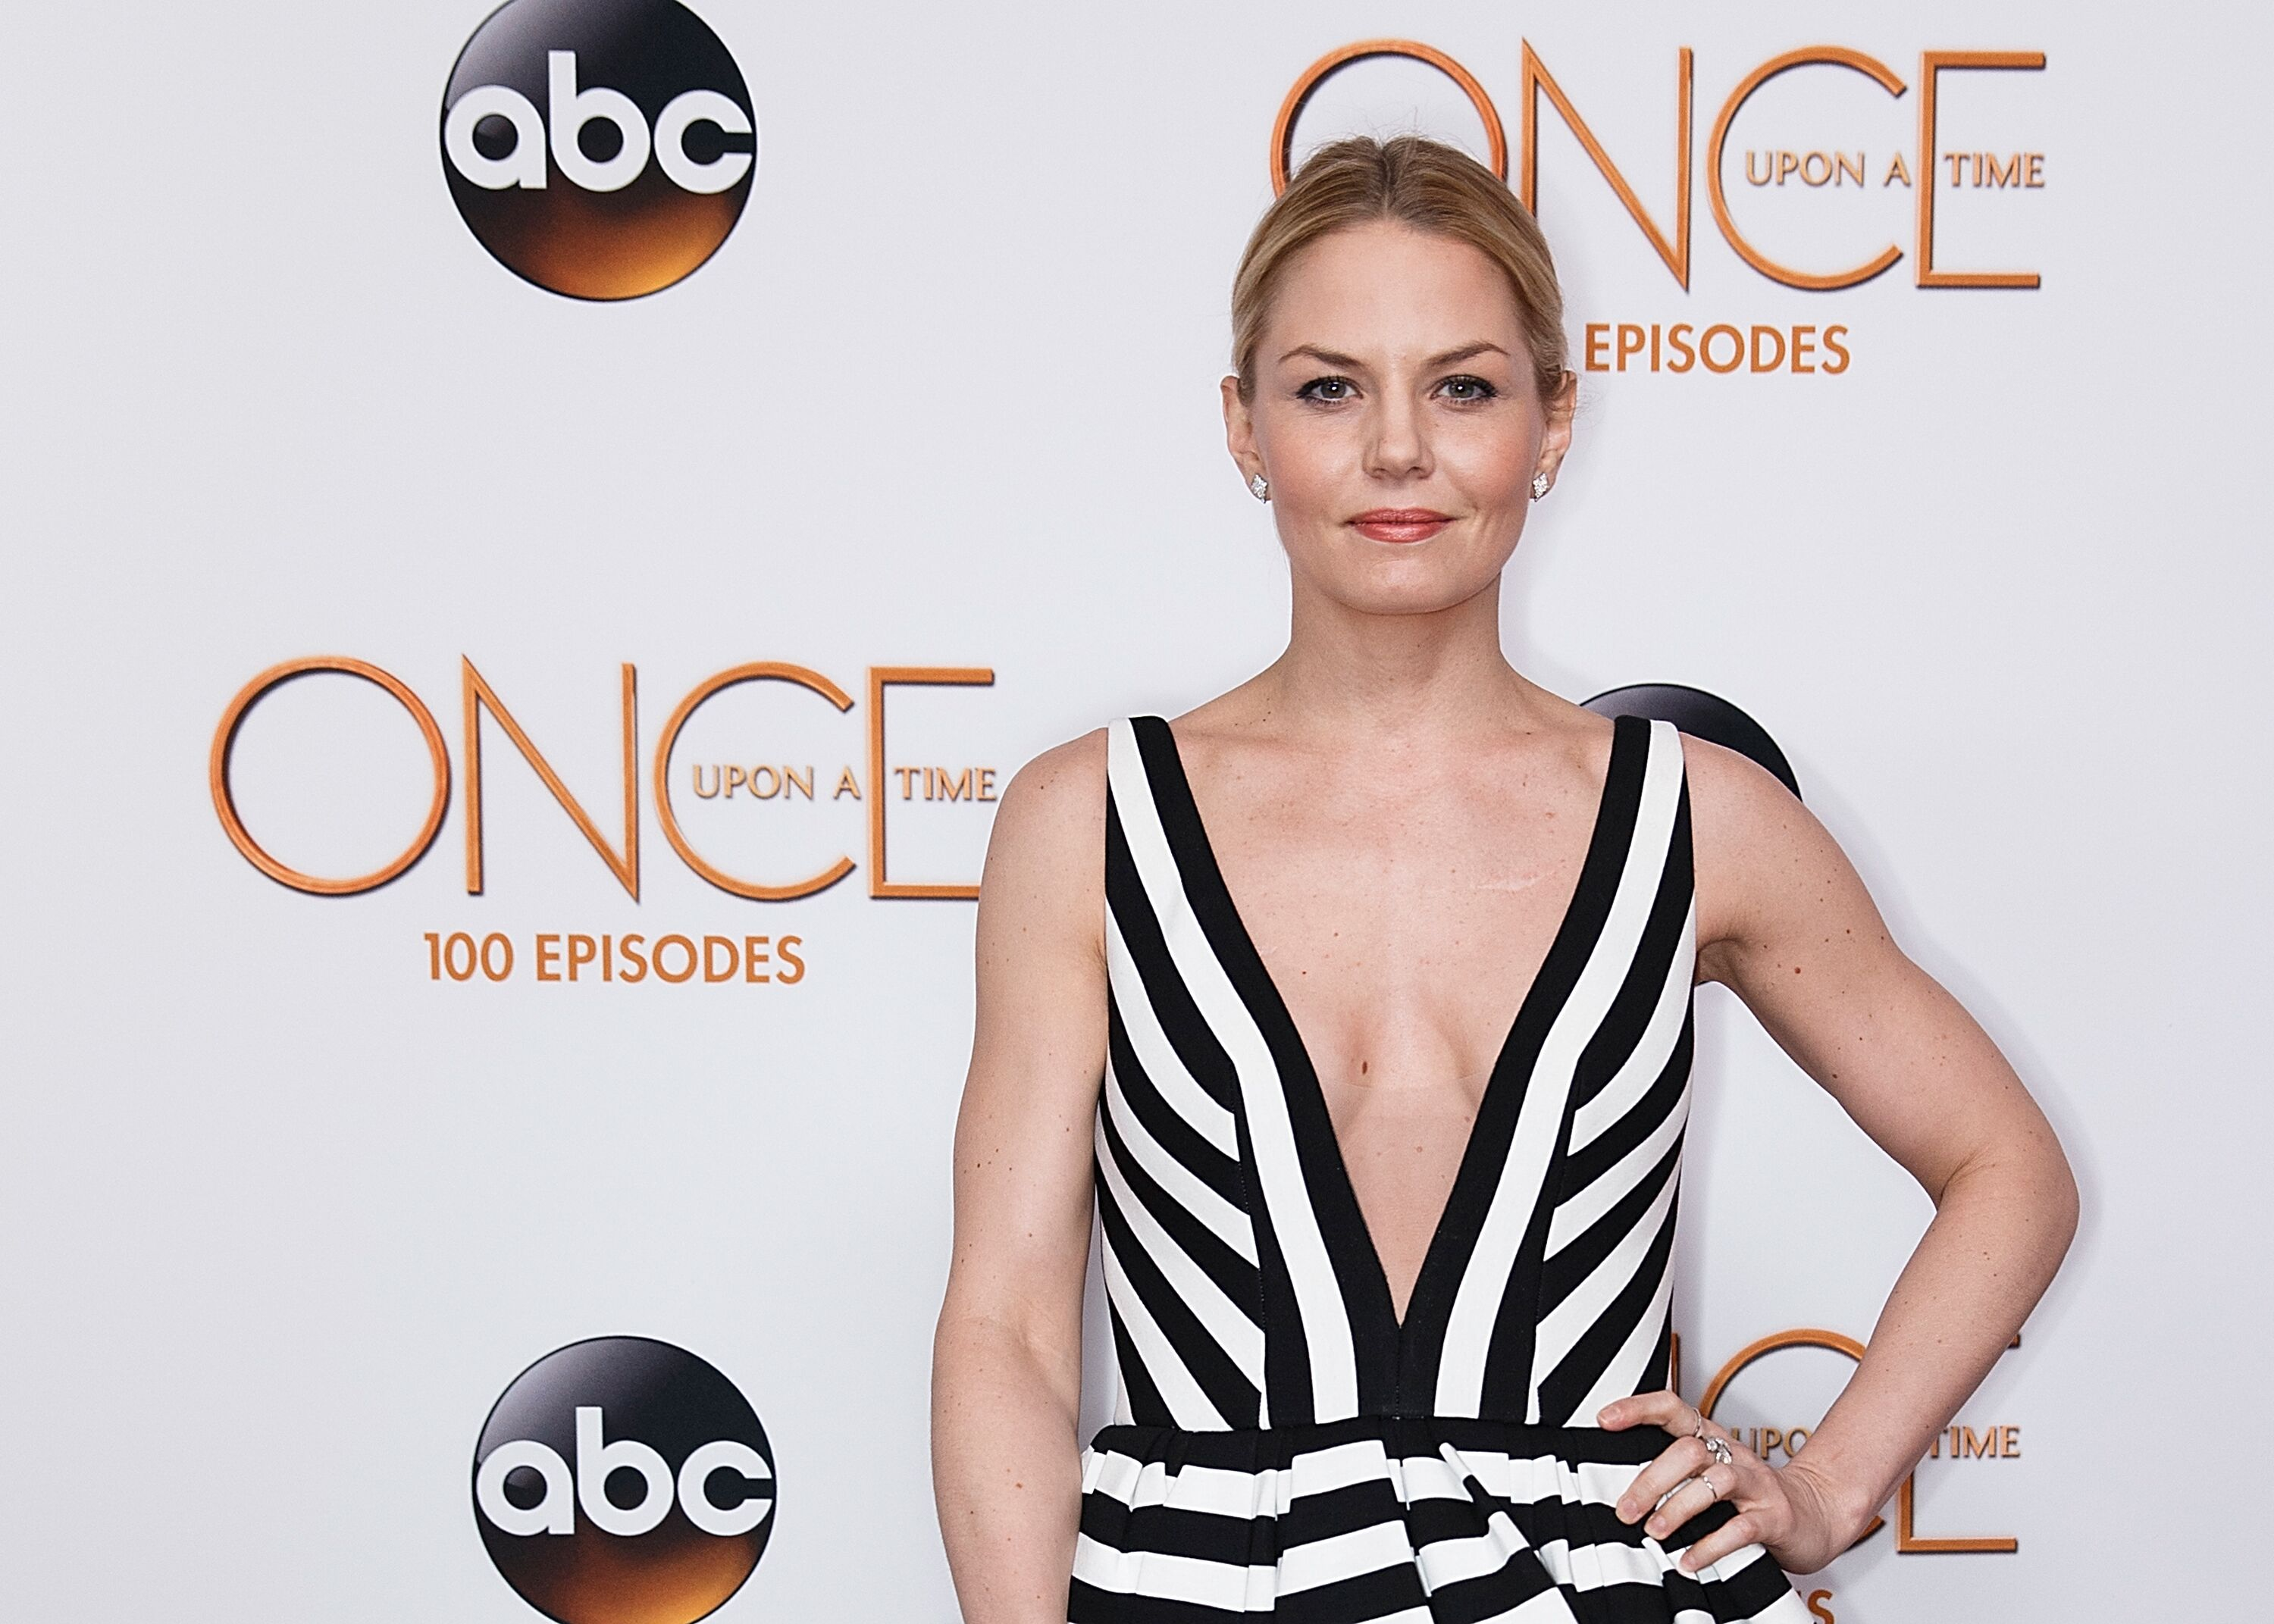 Once Upon A Time Season 6 Episode 9 Synopsis Changelings